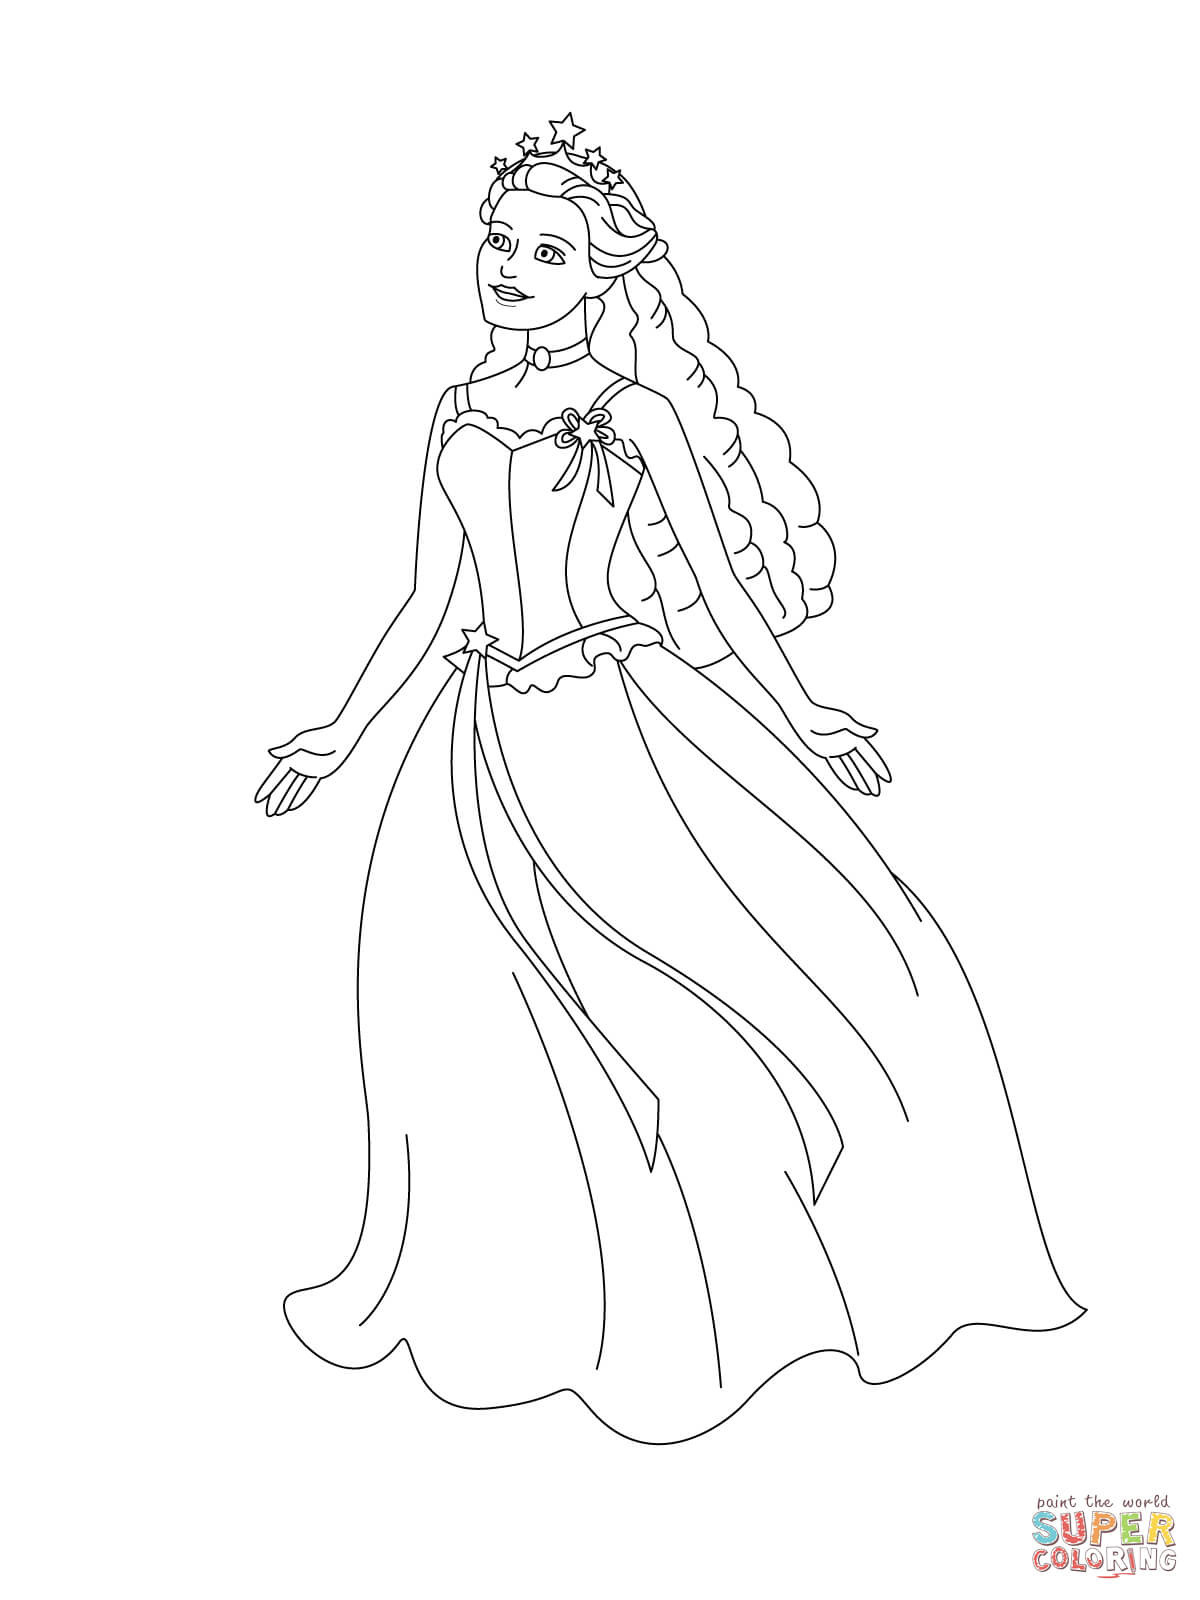 Pegasus Coloring Pages  to Print 3f - Free Download